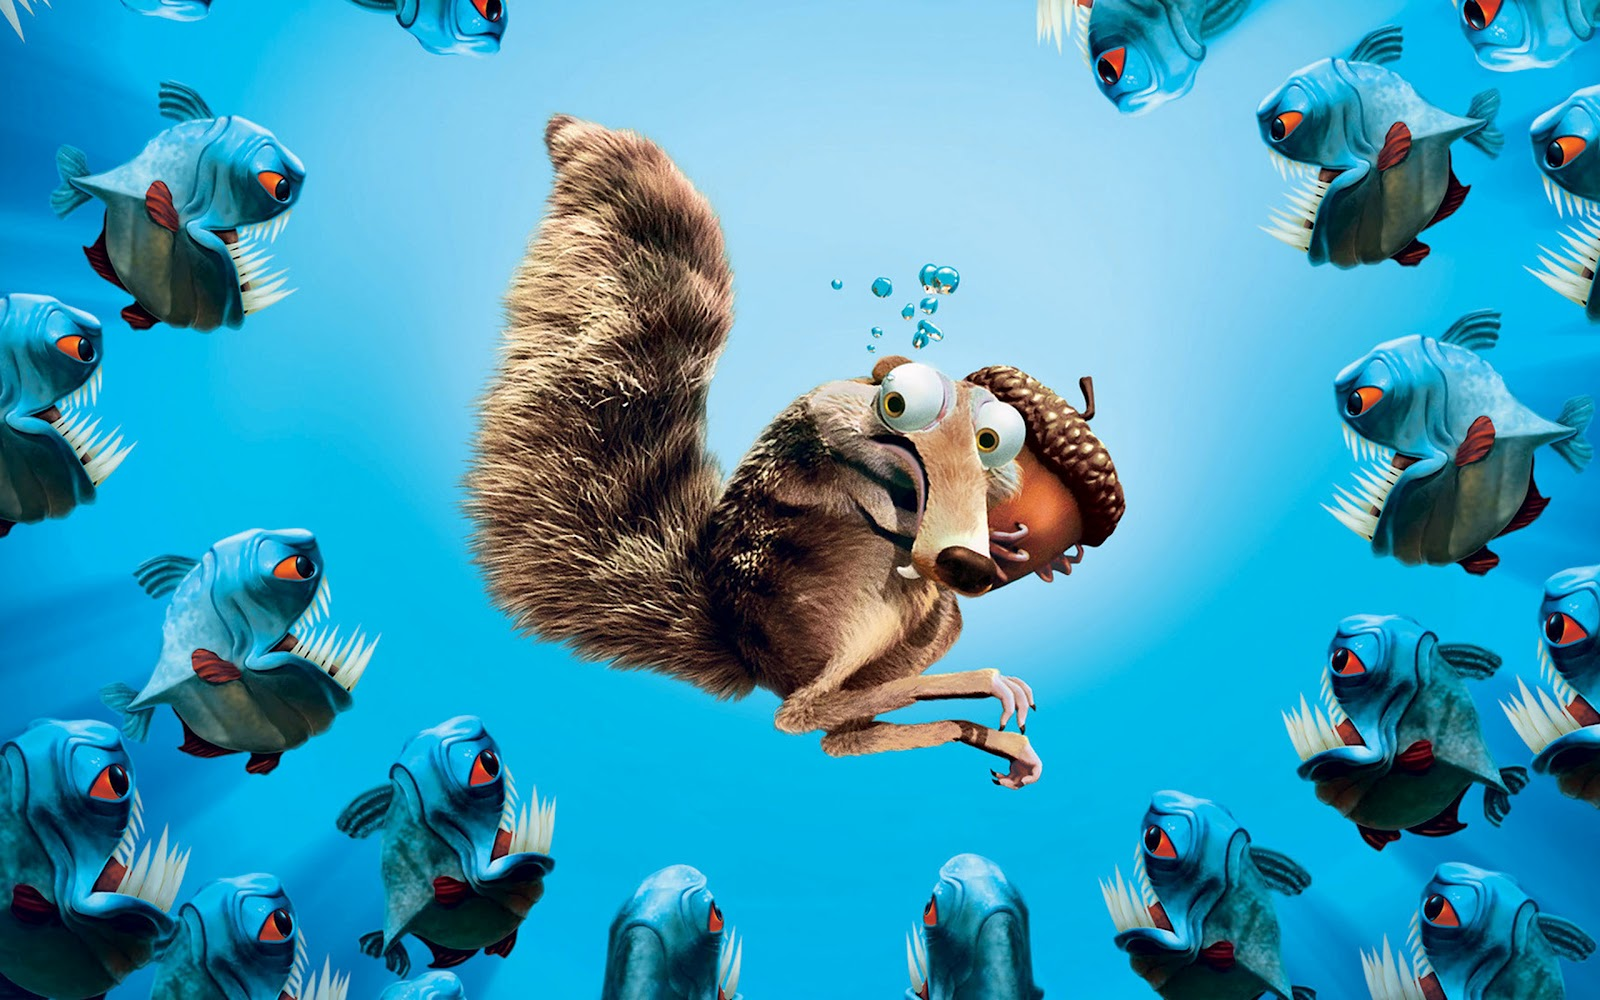 http://1.bp.blogspot.com/-pwRyUB0bVaA/UAzfmbw939I/AAAAAAAADHM/XwP9hyS5x6M/s1600/ice_age_4_continental_drift_2012-widescreen+wallpapers-hotmoviepictures+(1).jpg